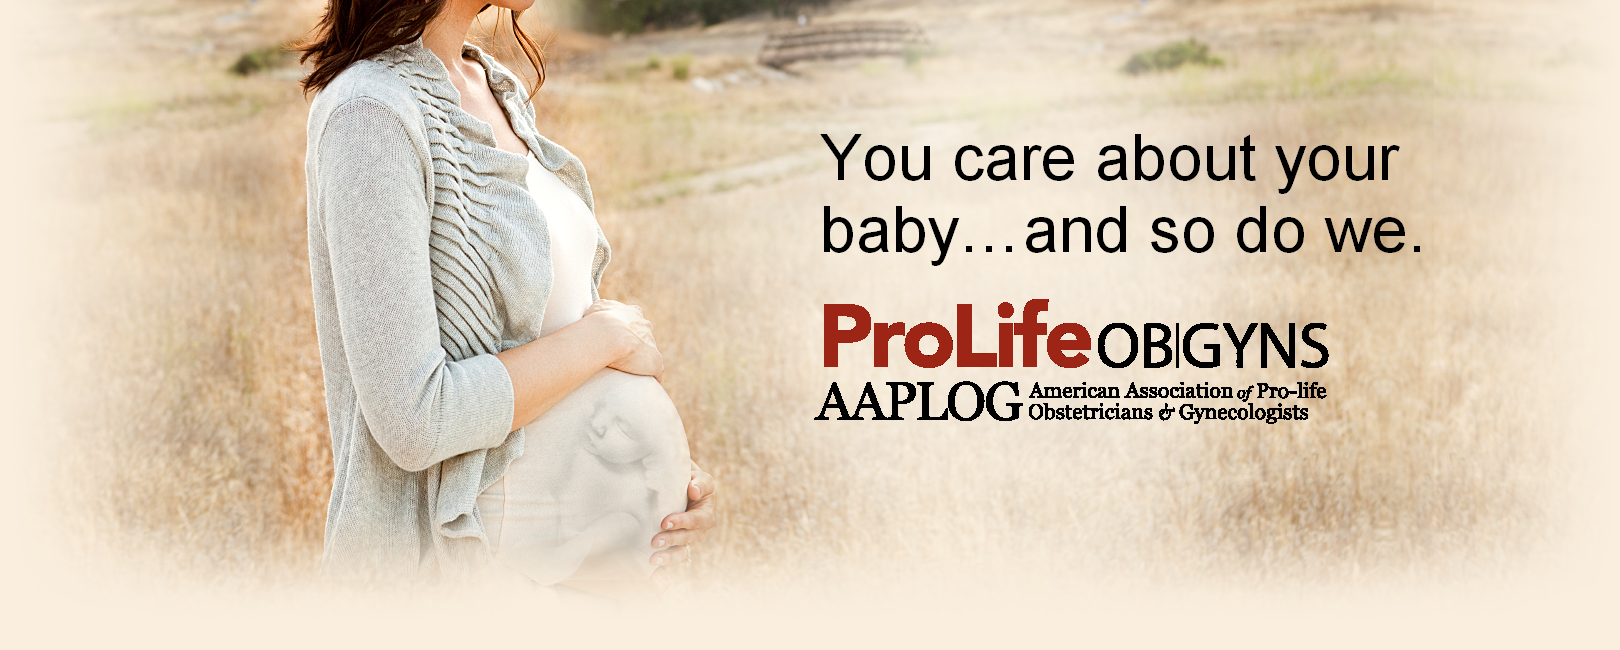 The American Association of ProLife OB/GYNS